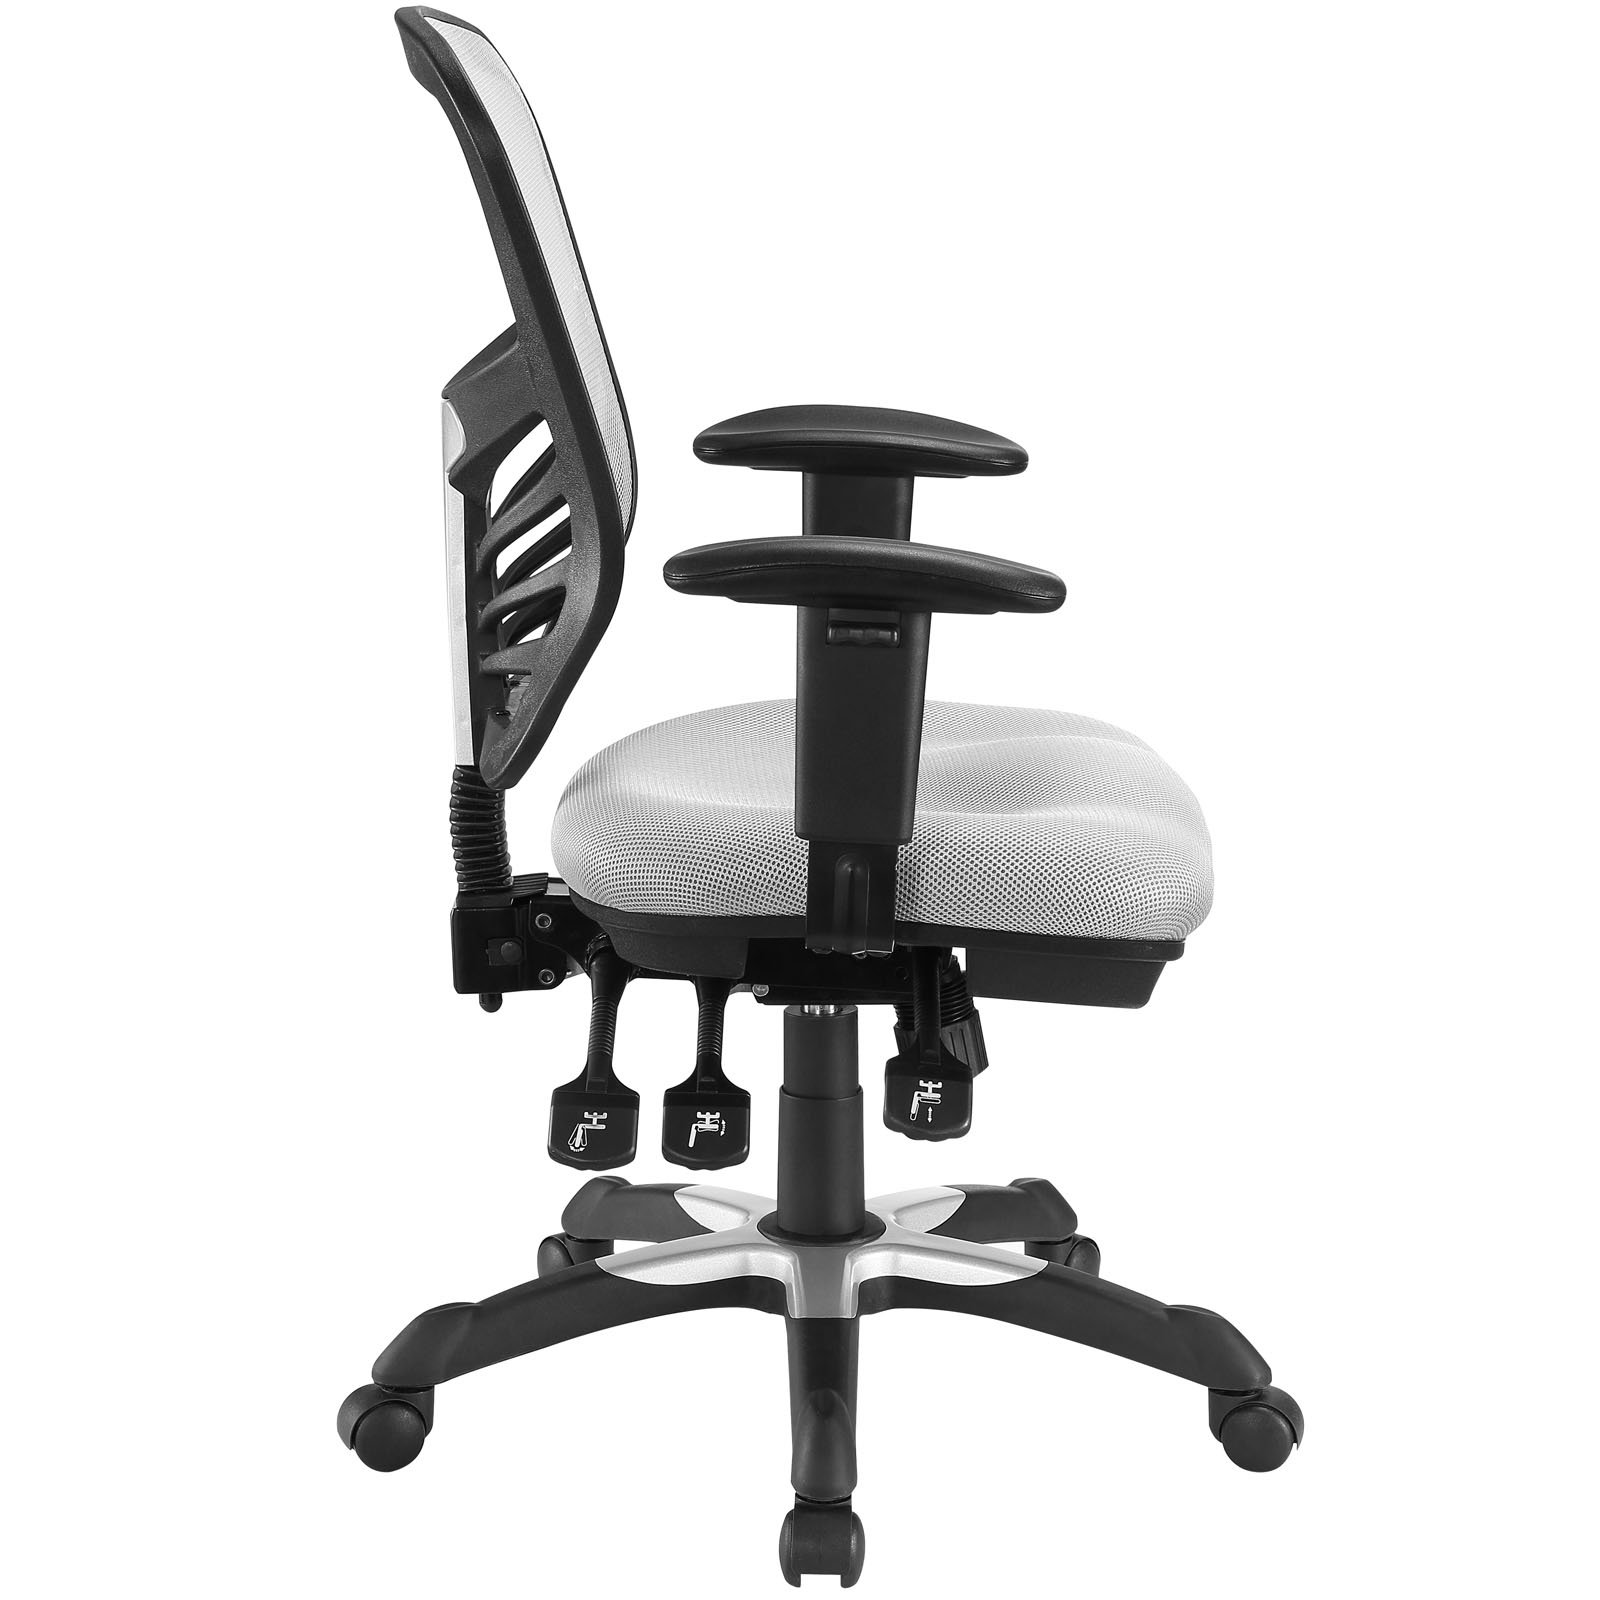 Modway Articulate Ergonomic Mesh Office Chair in Gray by Modway (Image #4)